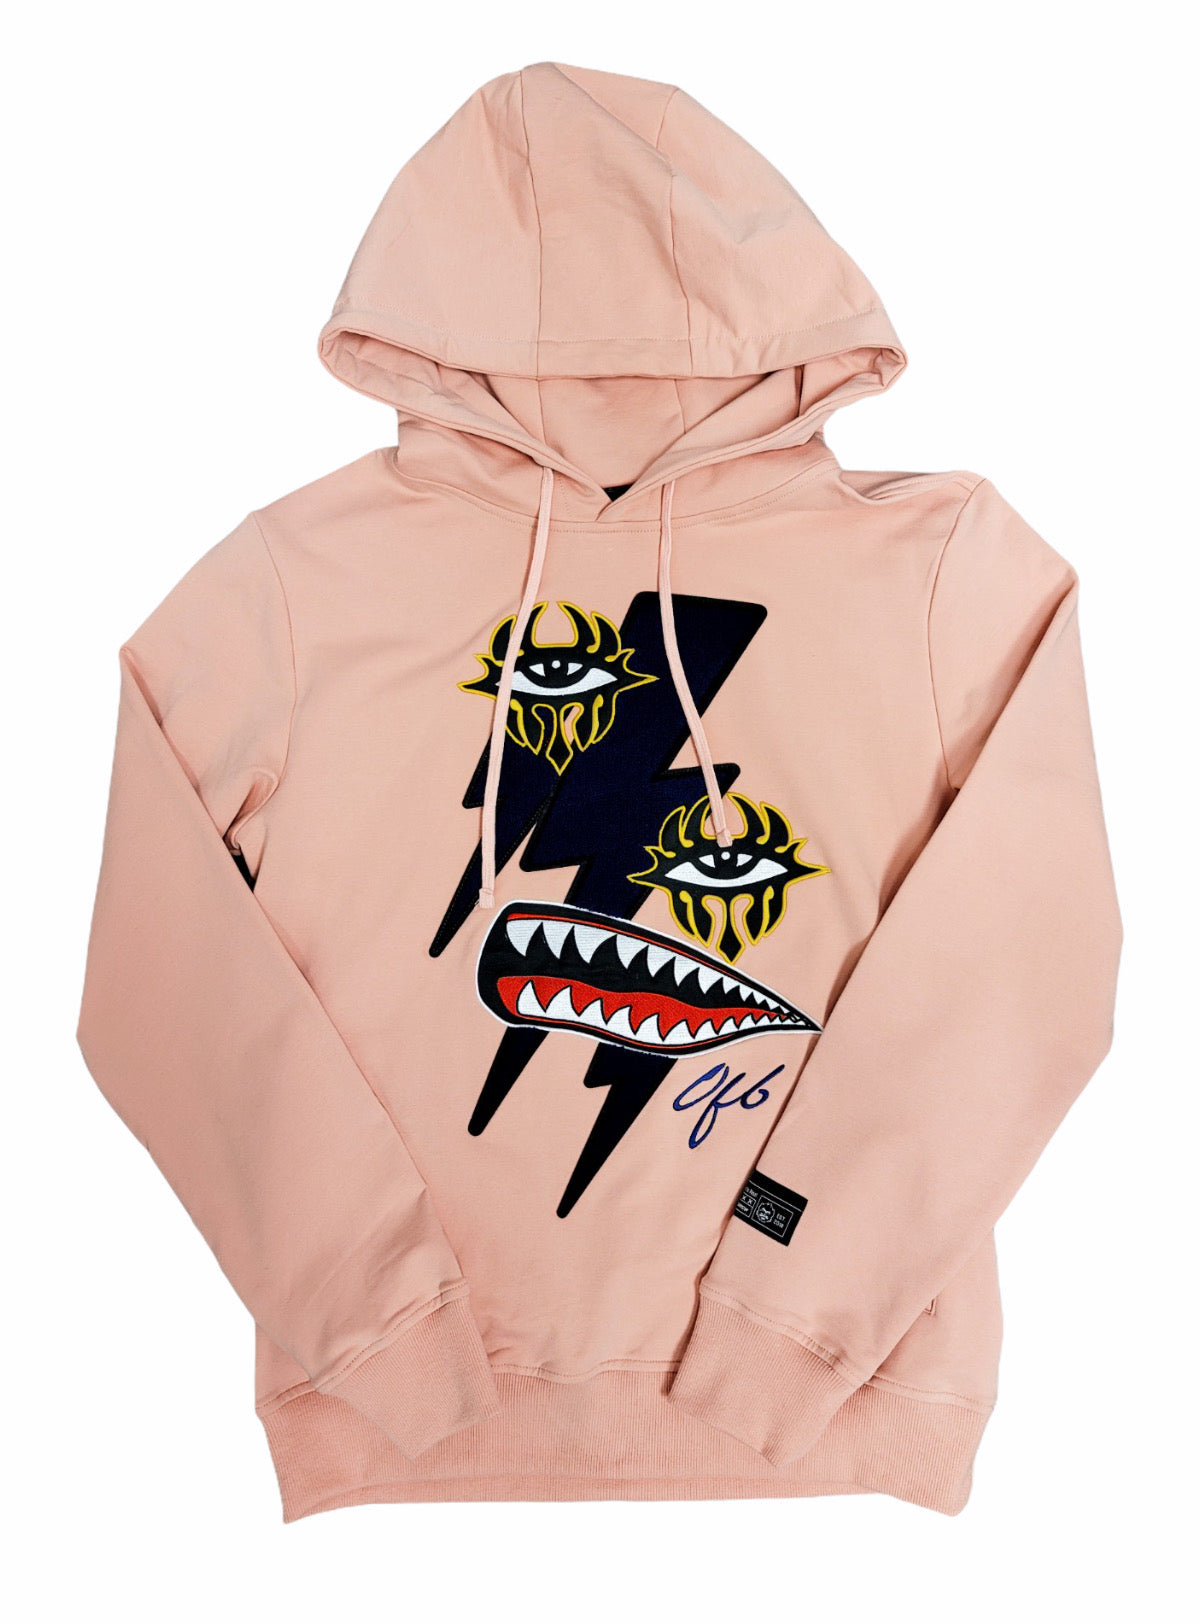 Offbeat Hoodie - Lightning Bolts - Soft Coral - 02FH01